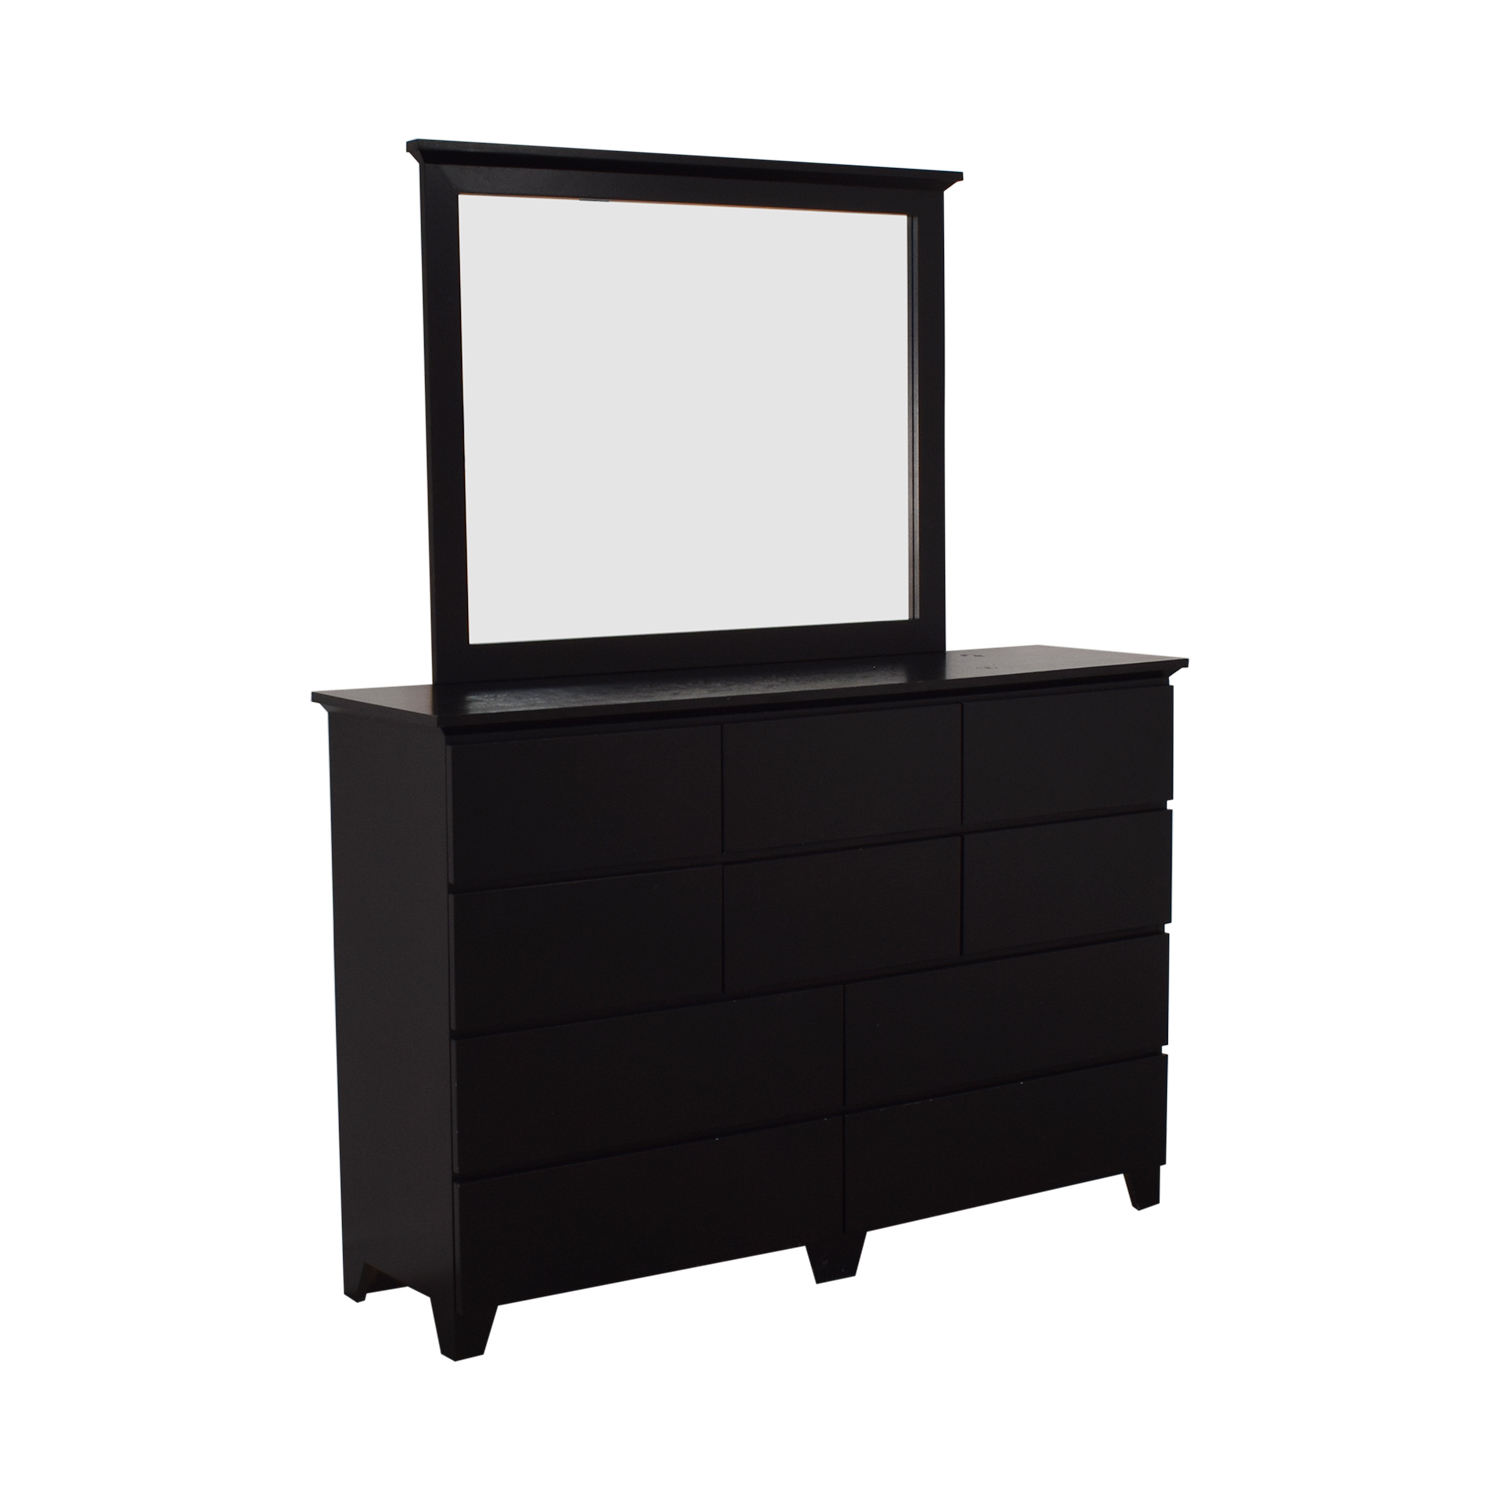 Gothic Cabinet Craft Gothic Cabinet Craft Dresser with Mirror nyc